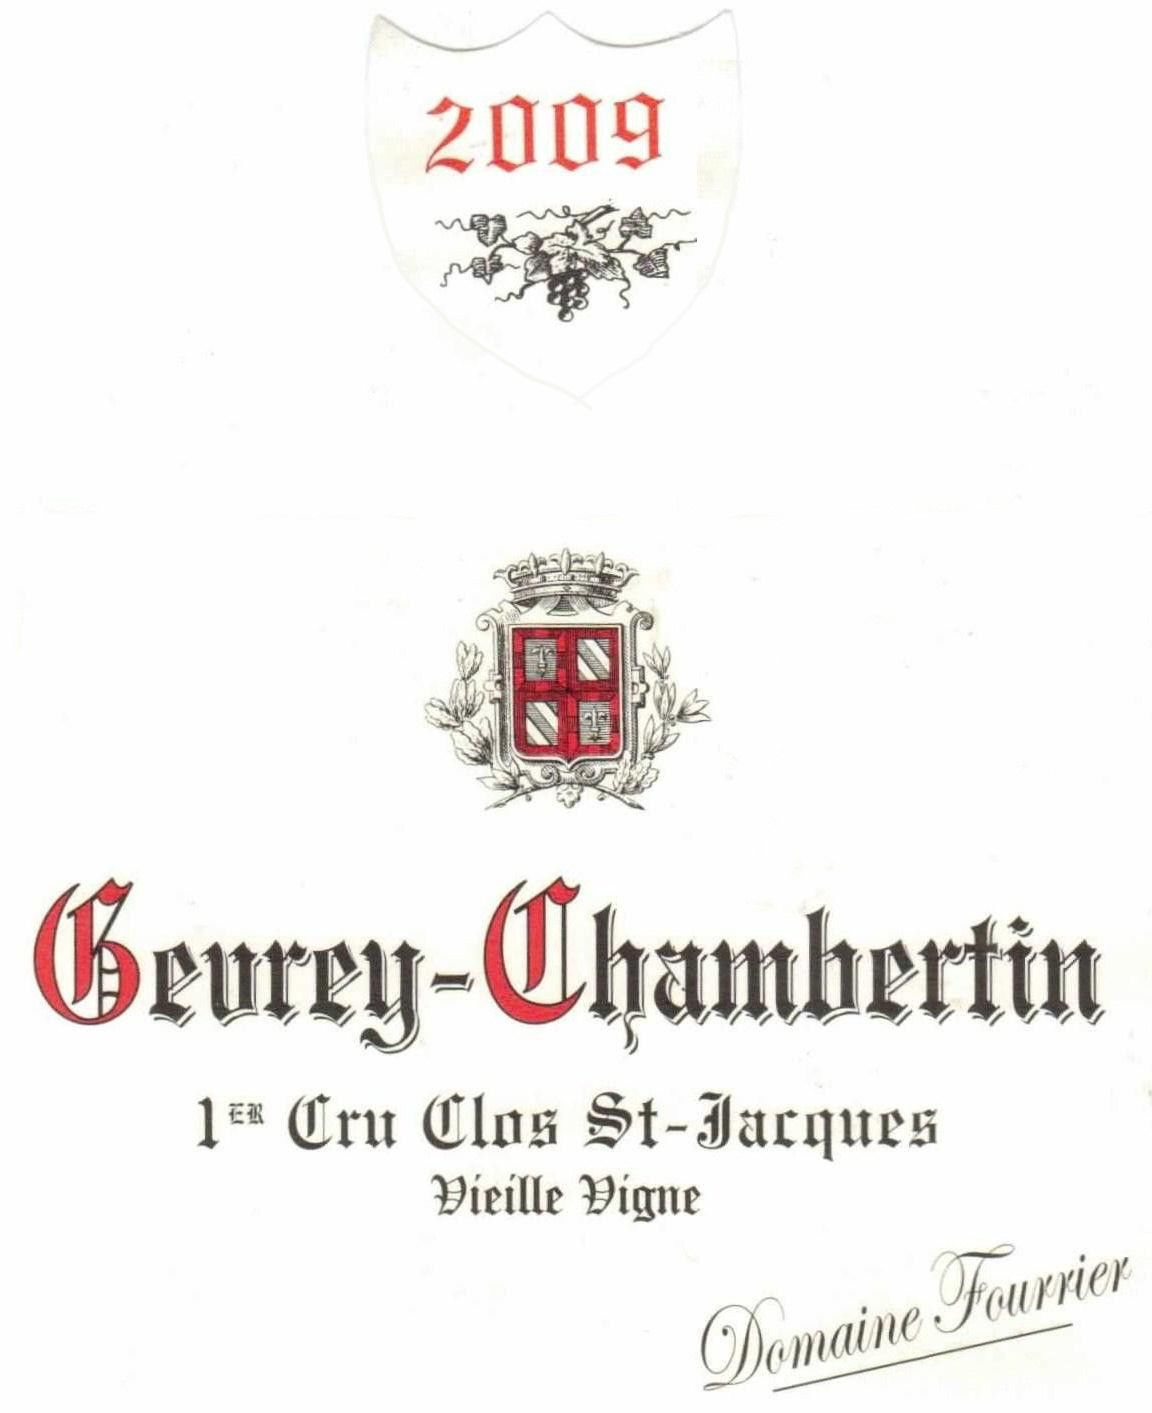 Domaine Fourrier Gevrey-Chambertin Clos St-Jacques 2009 Front Label